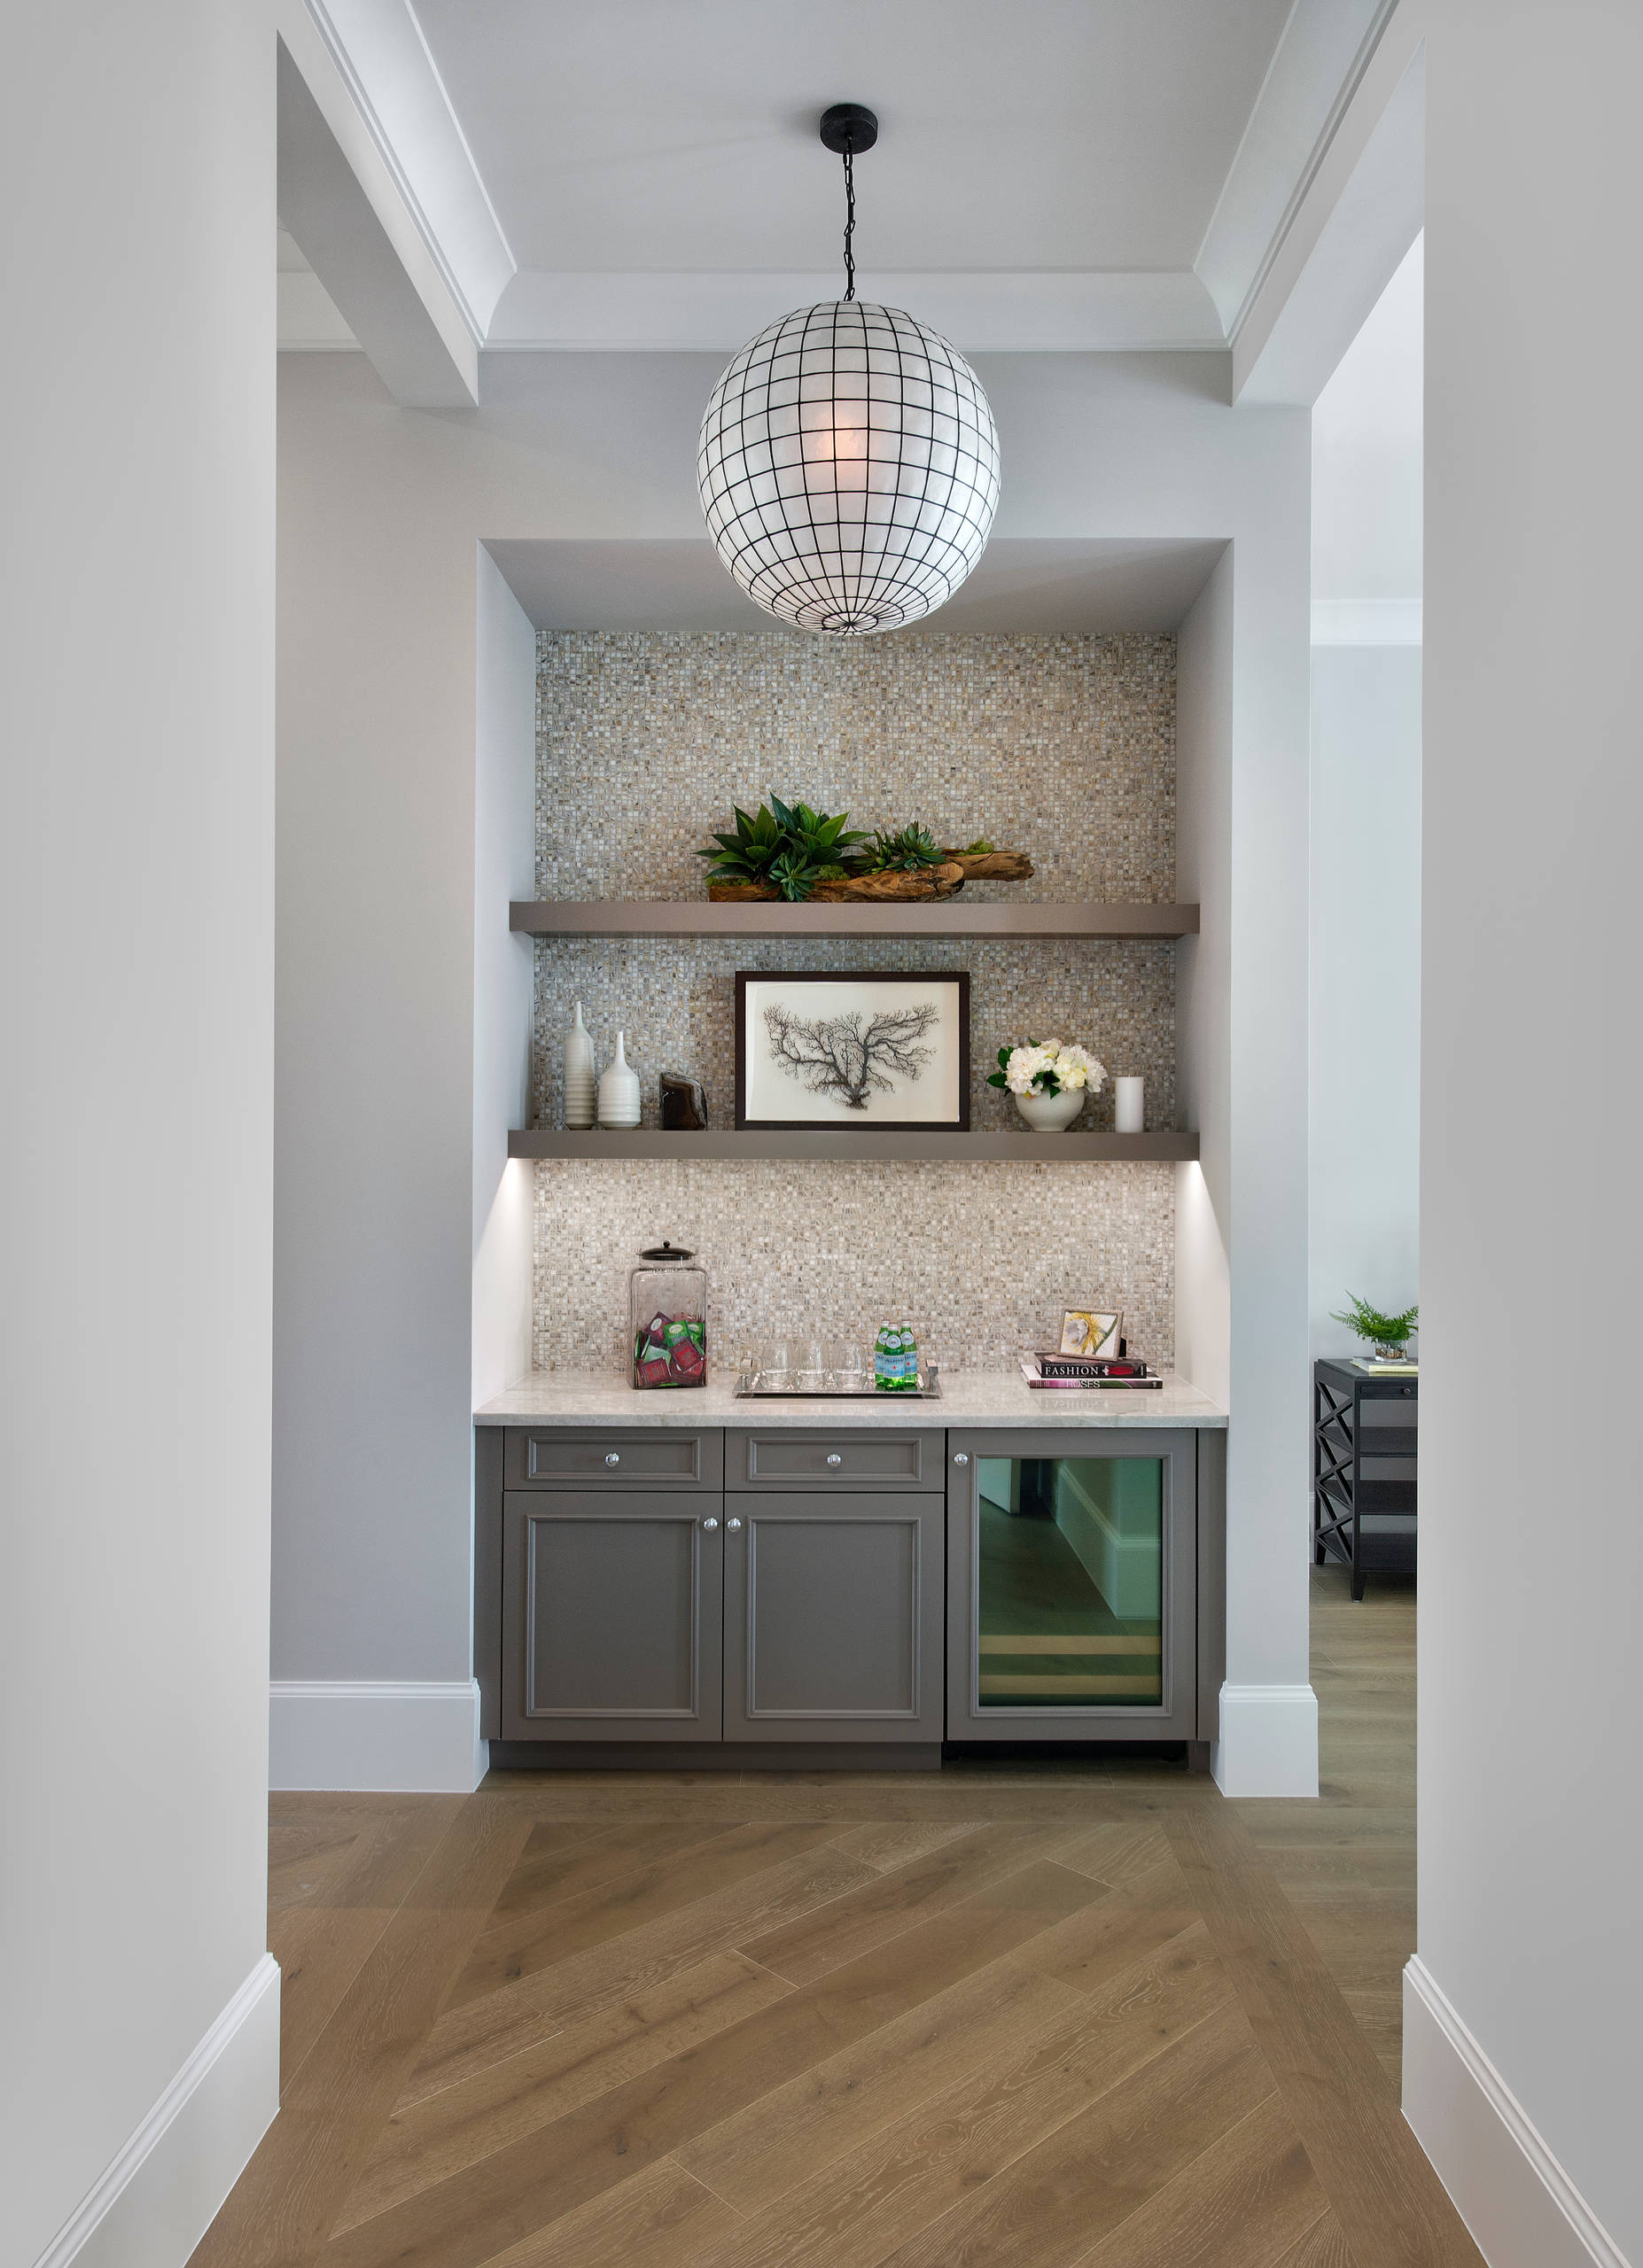 75 Beautiful Small Home Bar Pictures Ideas November 2020 Houzz